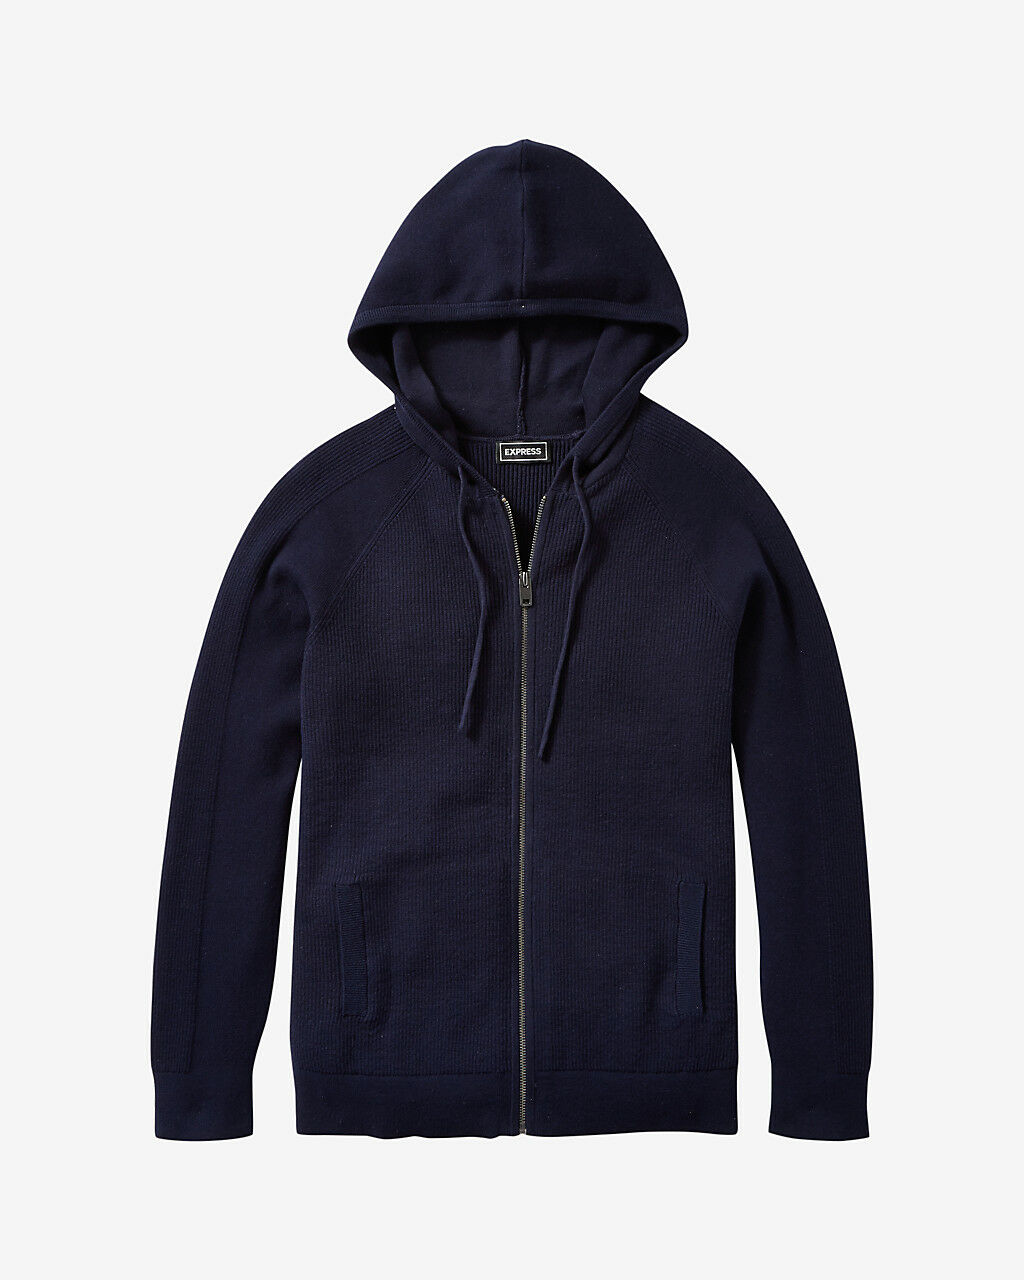 Express cotton ribbed full zip front hooded sweater L NWT Navy Style 03984841